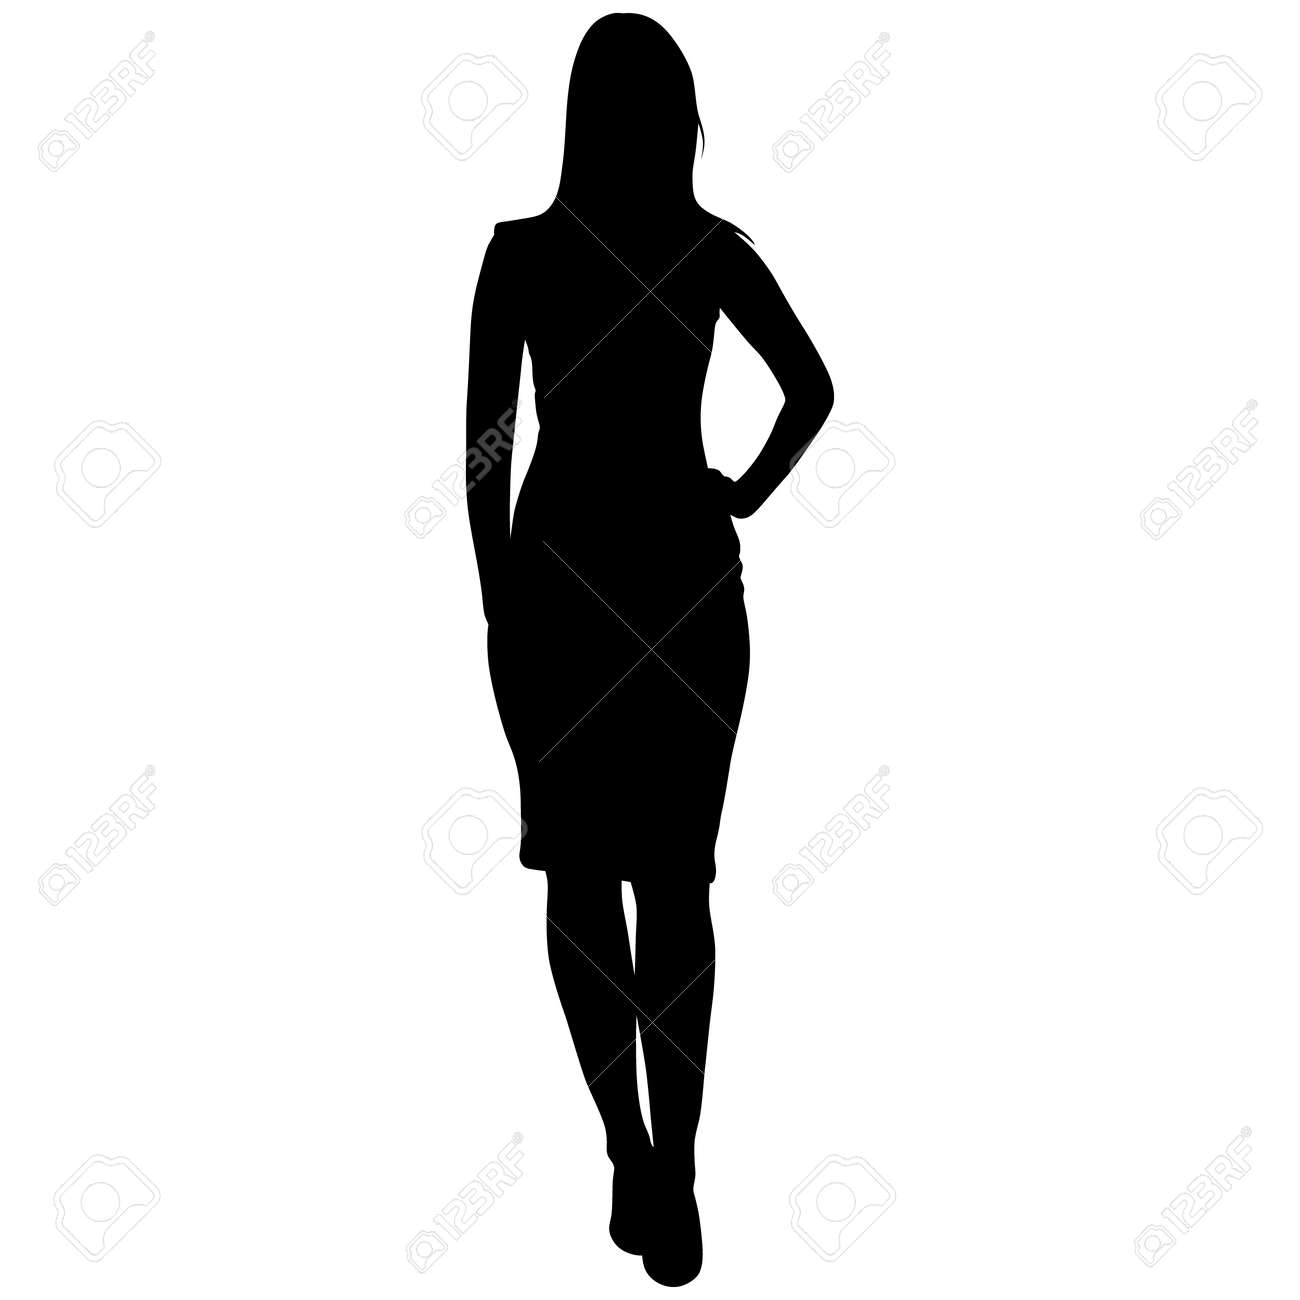 silhoutte of standing woman - 150358768